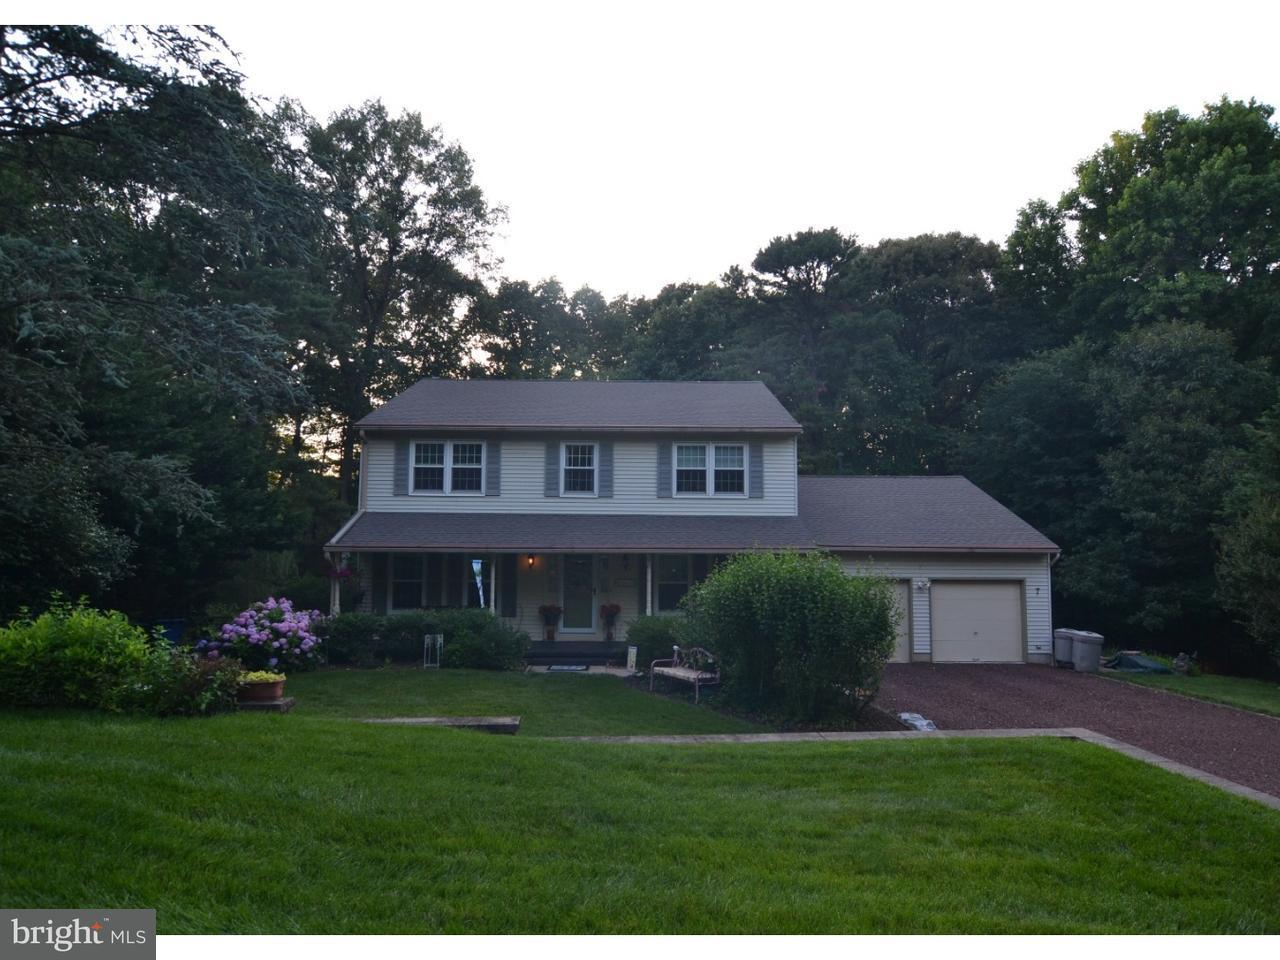 Single Family Home for Sale at 7 RIDGE VIEW Court Voorhees, New Jersey 08043 United States